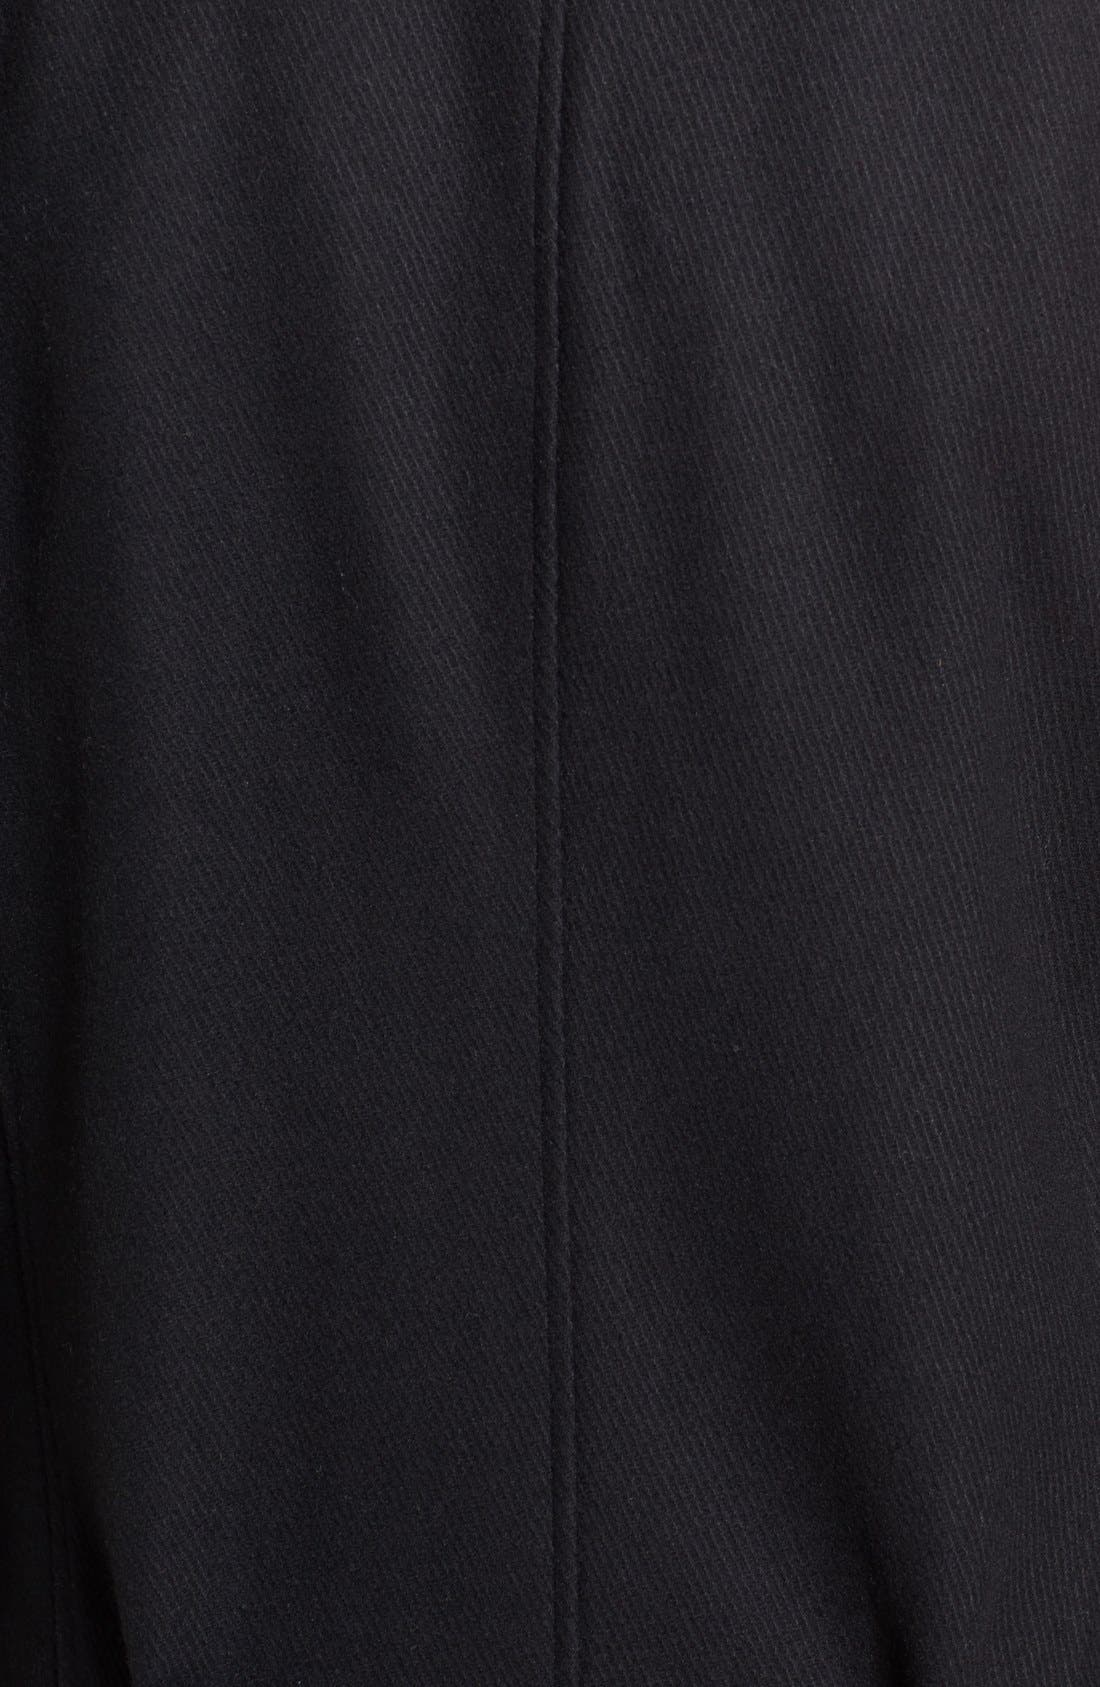 Wool Blend Overcoat with Knit Bib Inset,                             Alternate thumbnail 5, color,                             BLACK